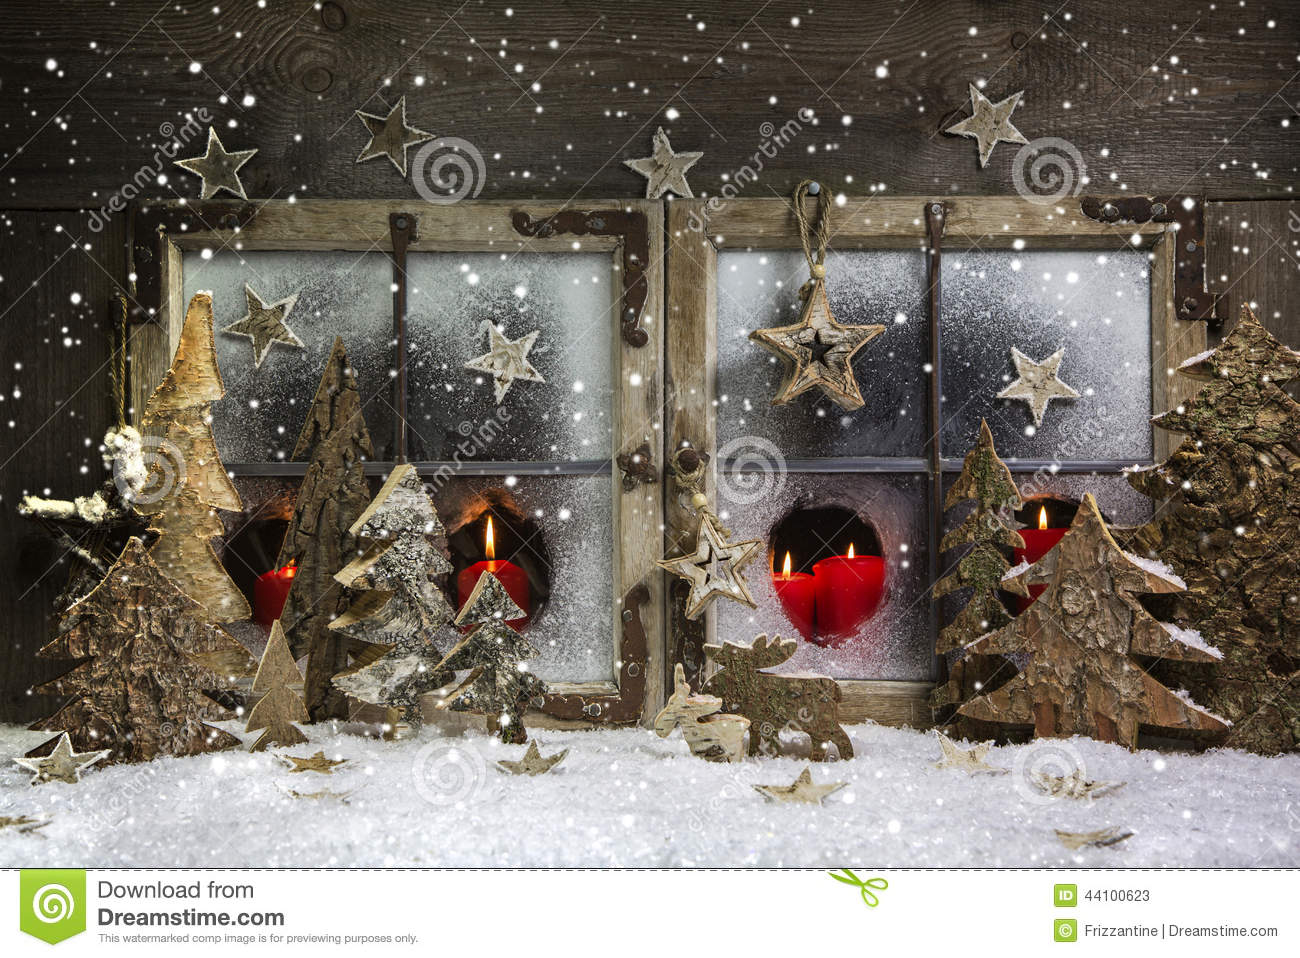 Mood and atmosphere christmas window decoration in red for Decoration de fenetre pour noel